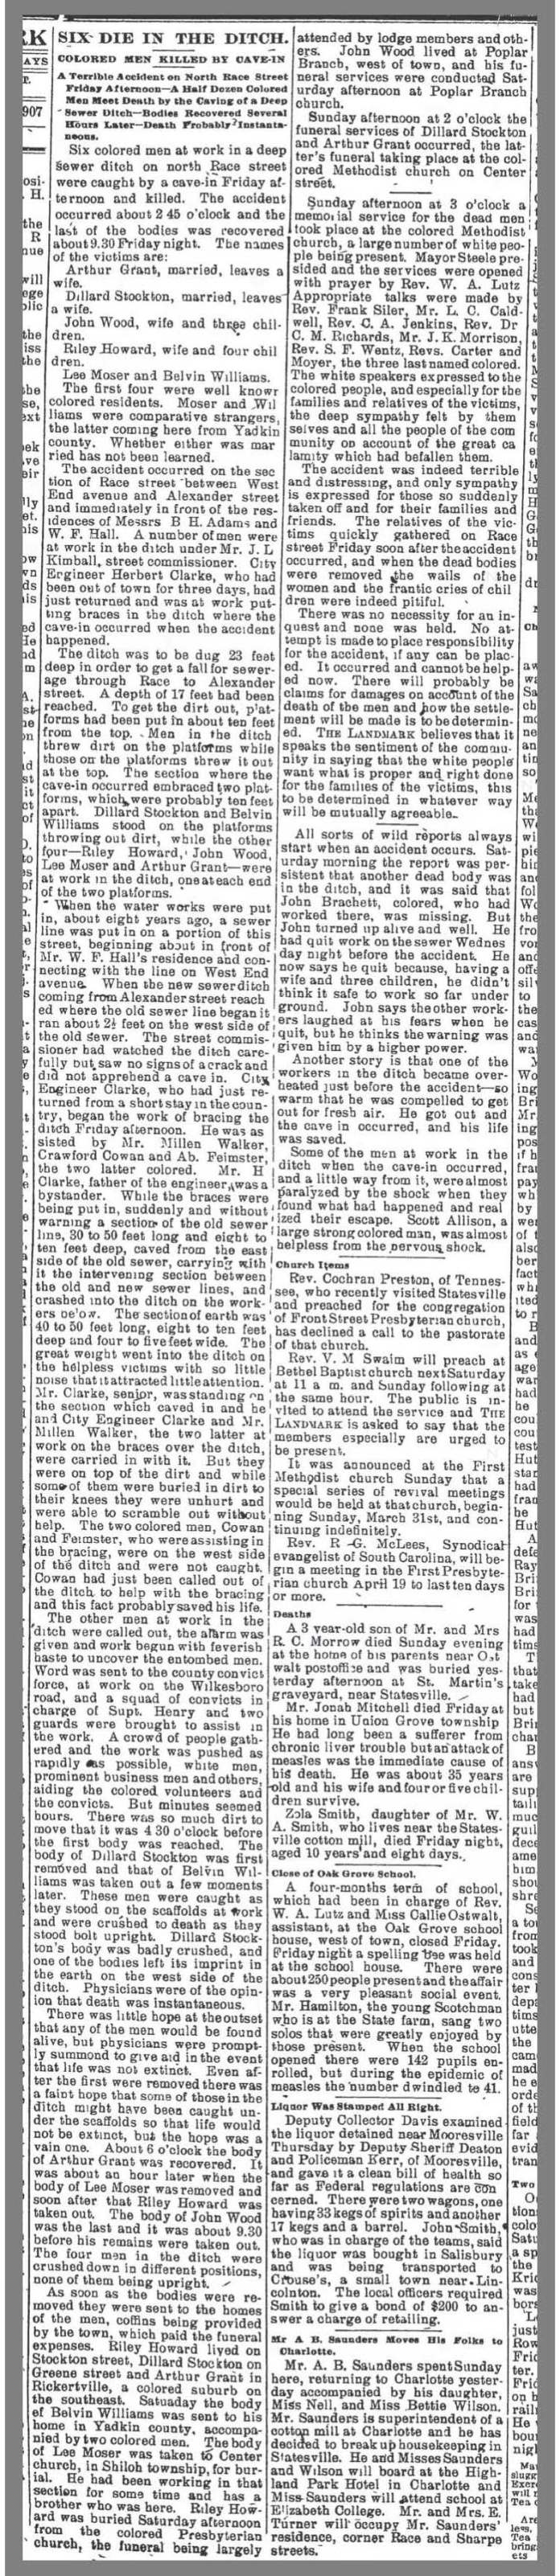 Statesville_Record__amp__Landmark_3_12_1907_Dillard_Stockton_killed